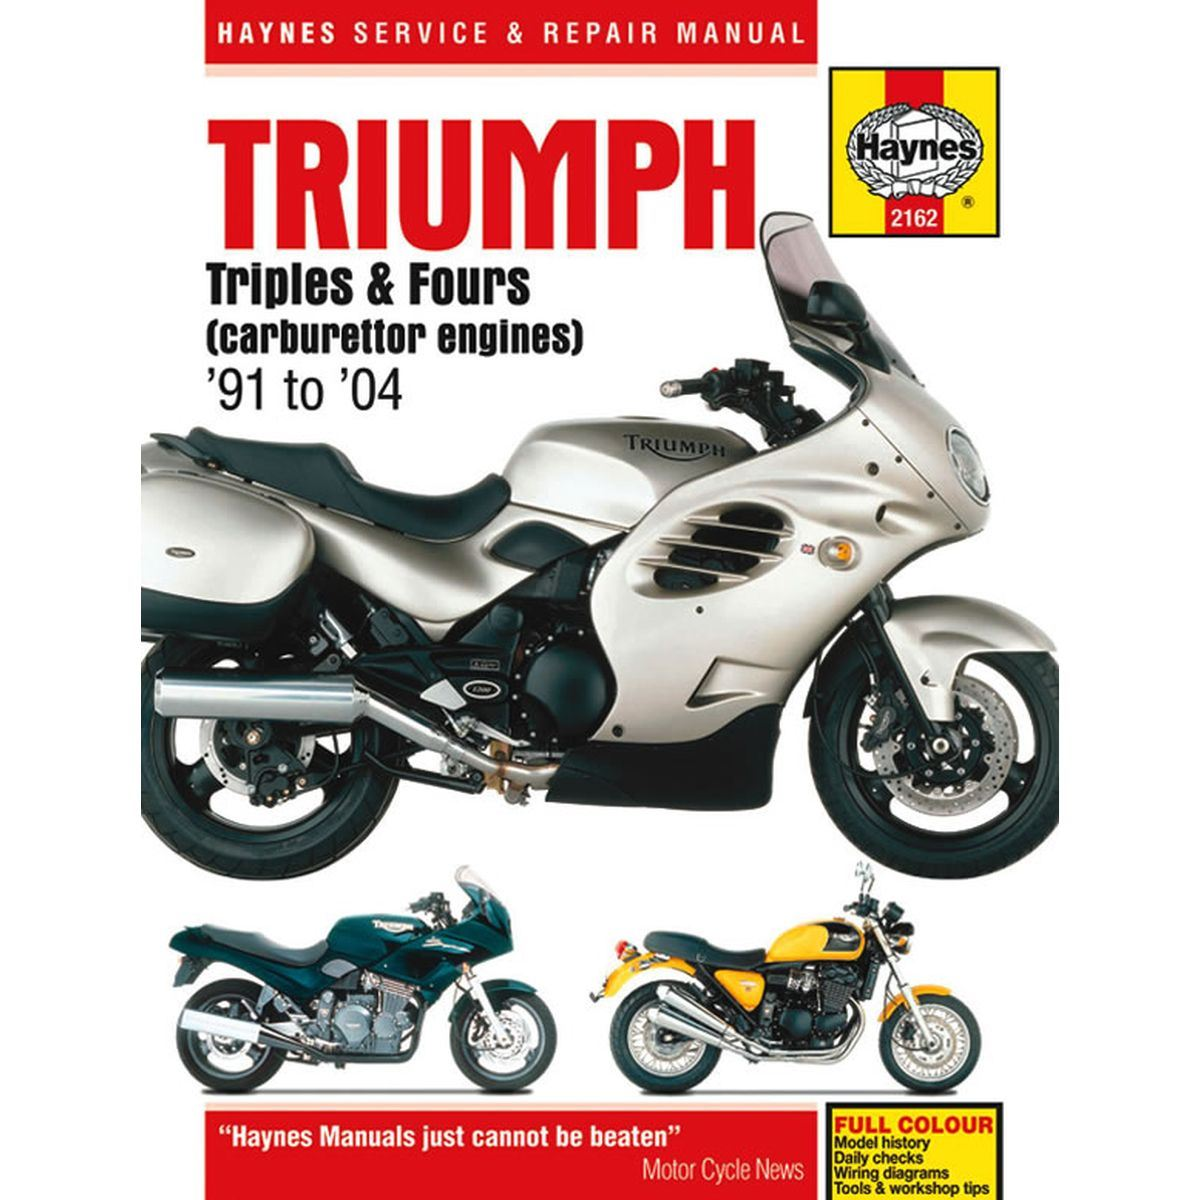 Image is loading Manual-Haynes-for-1999-Triumph-Daytona-1200-Special-